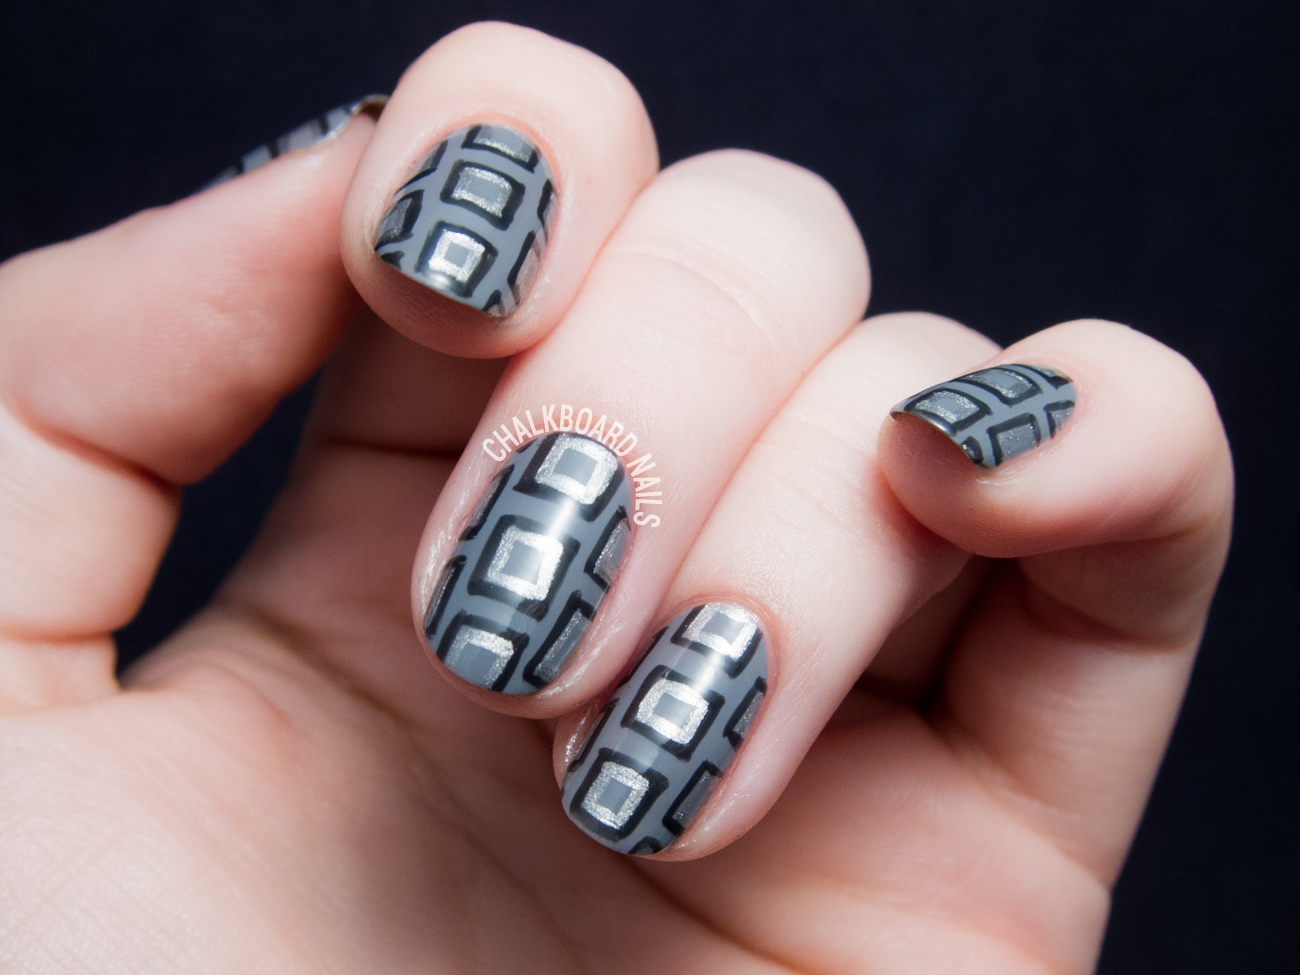 Monochrome geometric nail art by @chalkboardnails